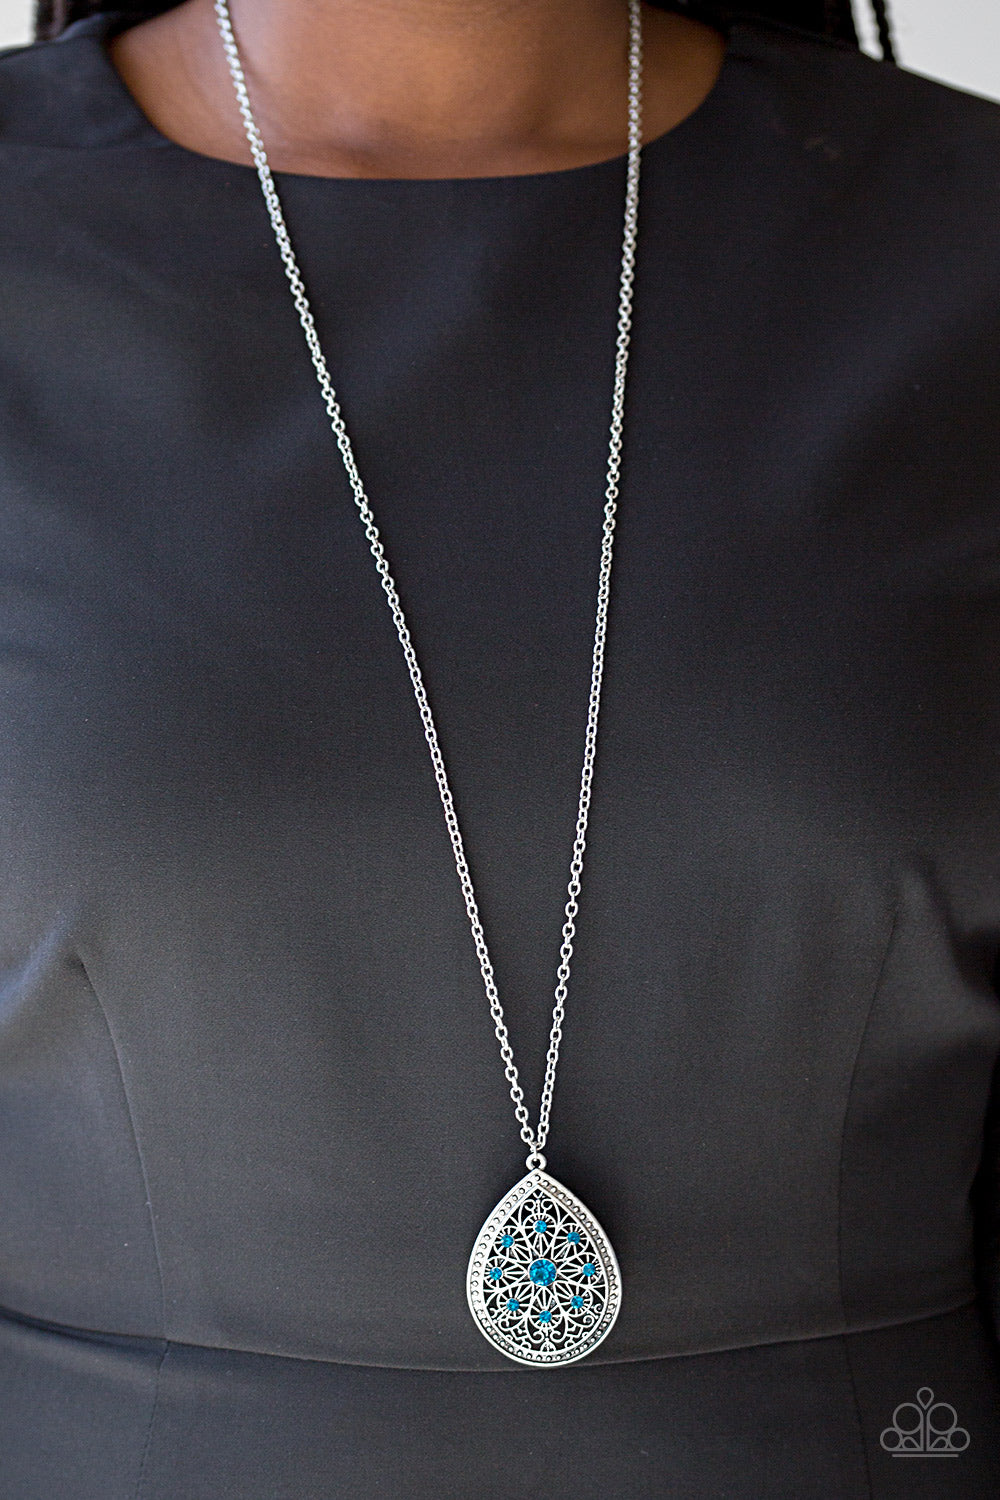 A dramatic teardrop pendant swings from the bottom of an elongated silver chain, elegantly slimming the torso. Glittery blue rhinestones are sprinkled along the pendant as silver filigree dances across the center, creating a regal floral pattern. Features an adjustable clasp closure.  Sold as one individual necklace. Includes one pair of matching earrings.  Always nickel and lead free!